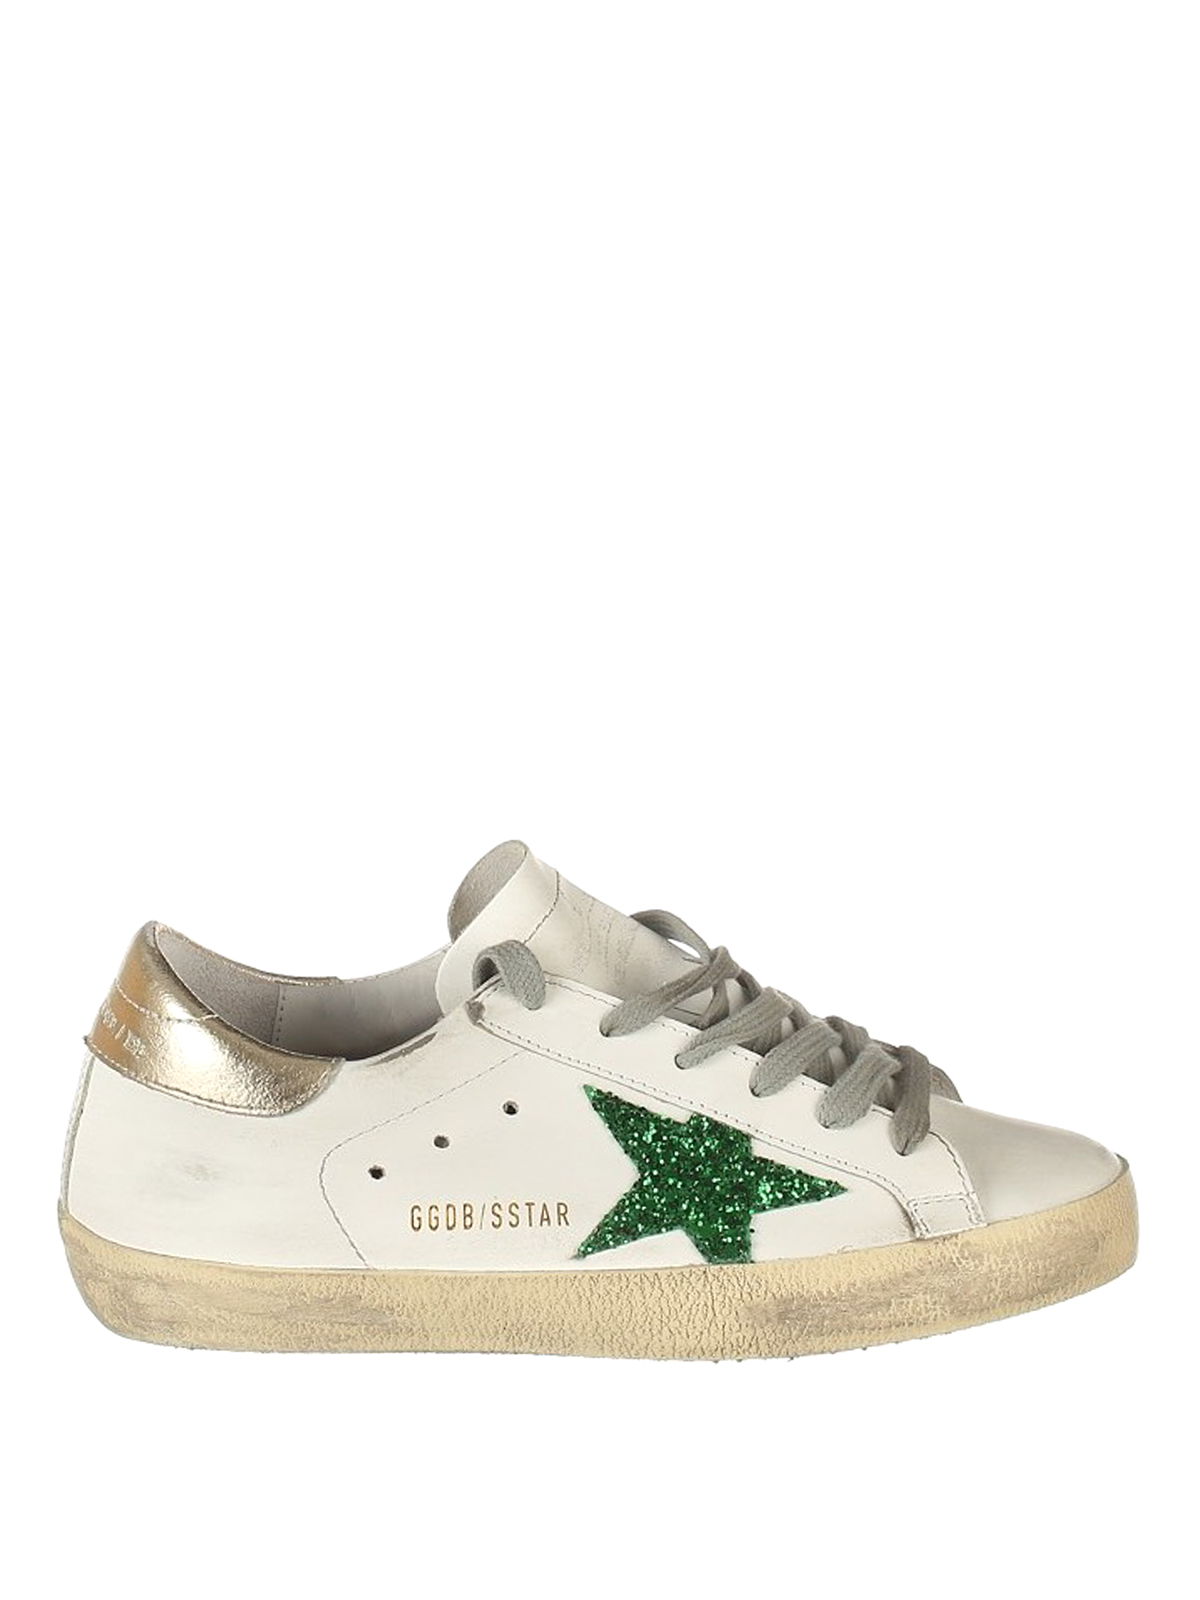 uk availability 0d944 a4f7e GOLDEN GOOSE  trainers - Green glitter patch Superstar shoes